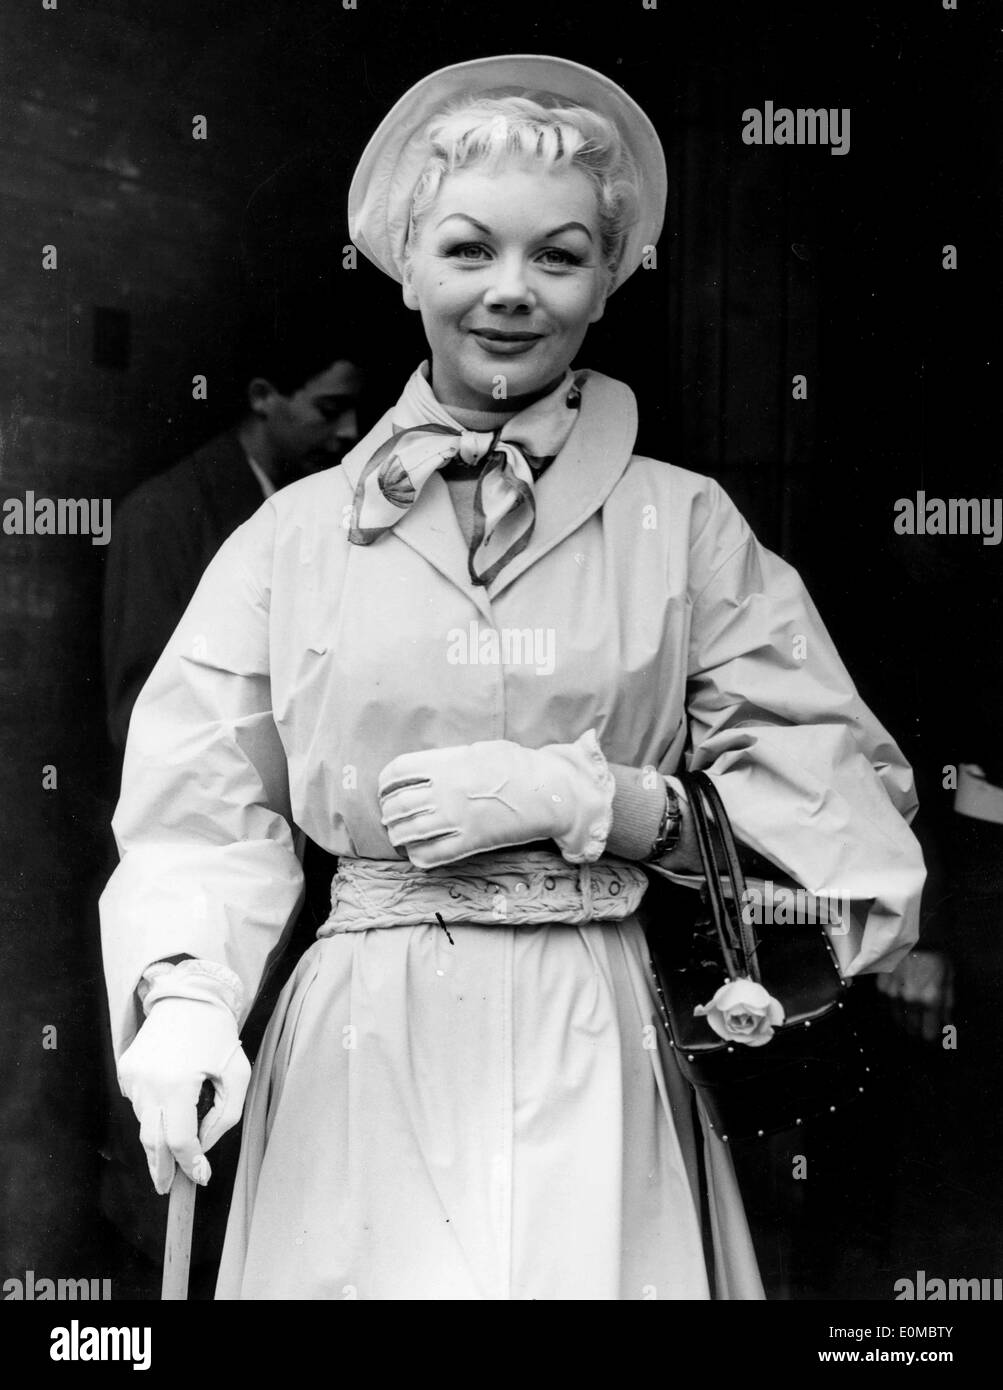 Gloria Nord on her way to Wealdstone Police Court - Stock Image